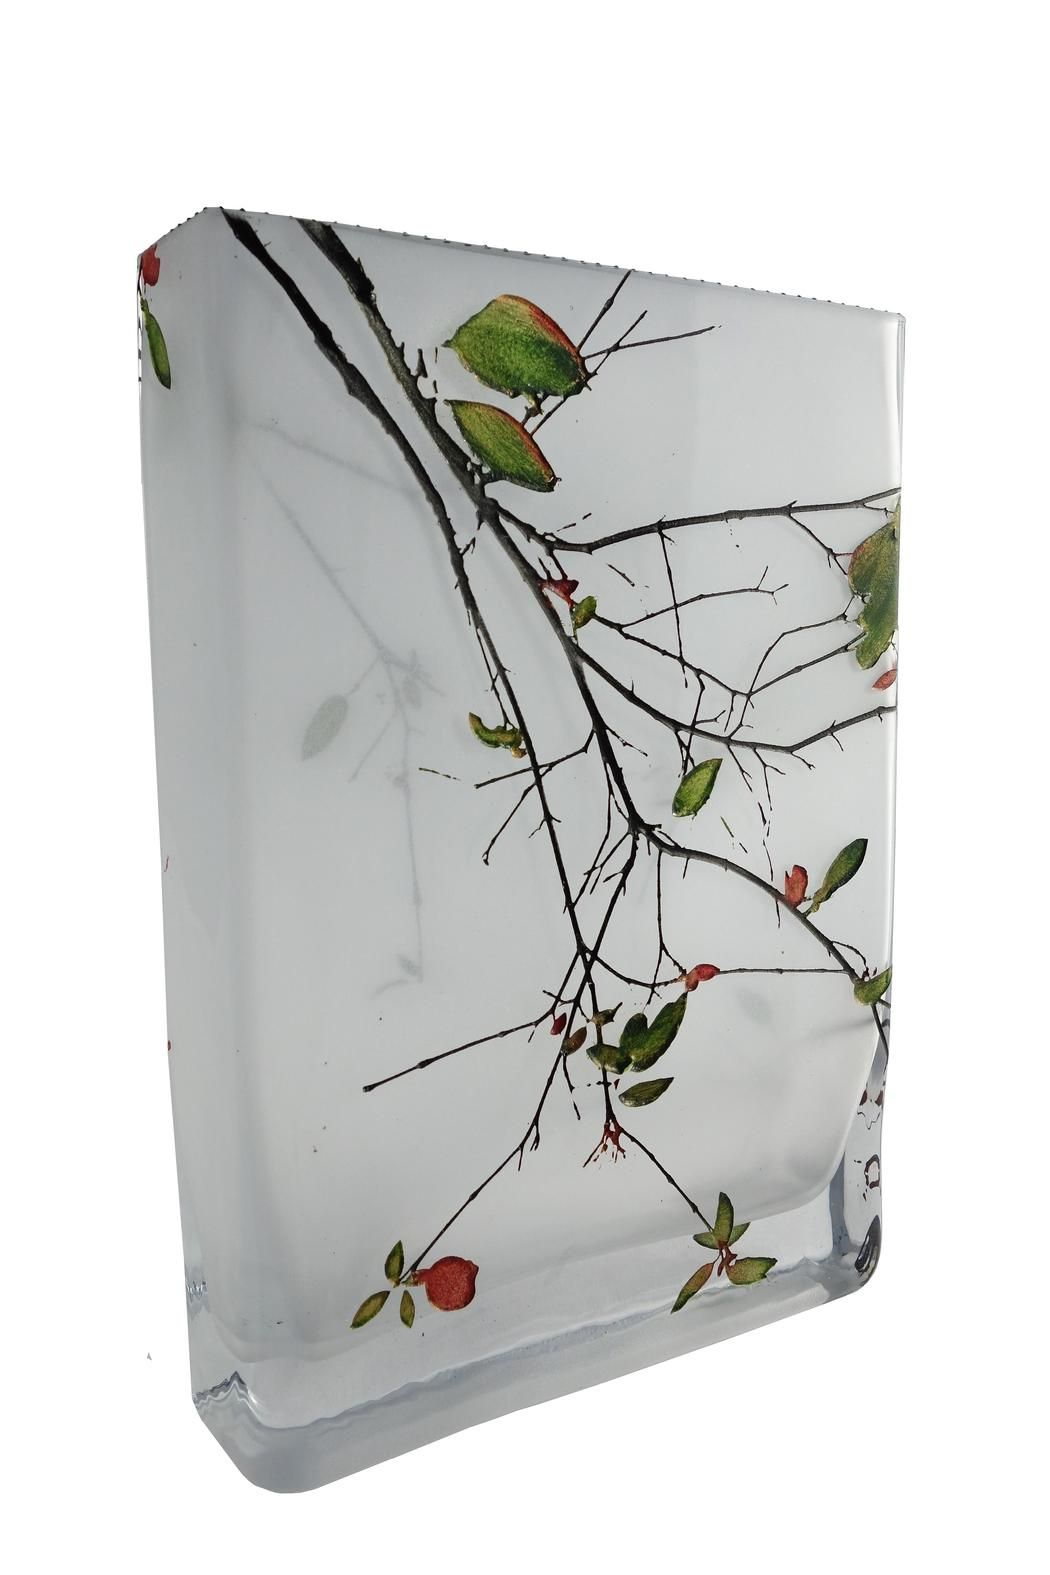 """Delicate Leaf Vase. Meticulously crafted by Mary-Melinda wellsandt in glass from hand-cut resist patterns combined with sandblasting and multiple layers of archival paints. Inspired by the glow of leaves in the misty forest, this vase can stand by itself as an art piece or used for flowers, leaves or even bare branches. 6""""W x 8.25"""" H x 1.5 W. 2 lbs.   Delicate Leaf Vase by Mary-Melinda Wellsandt. Home & Gifts - Home Decor - Vases Philadelphia, Pennsylvania"""